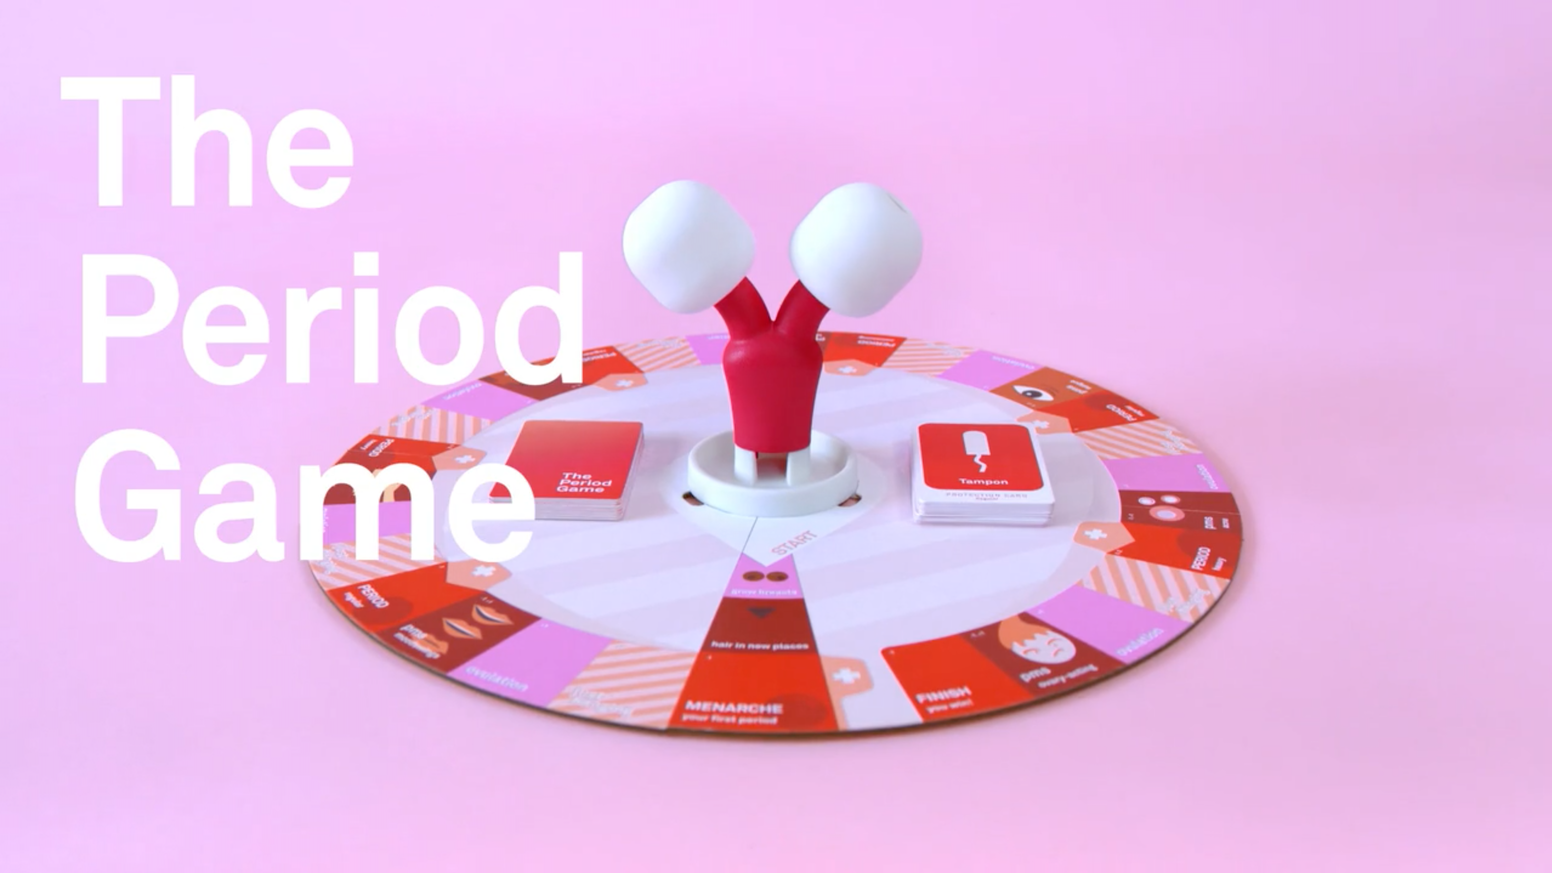 Learn how to go with the flow with this menstruation-themed board game